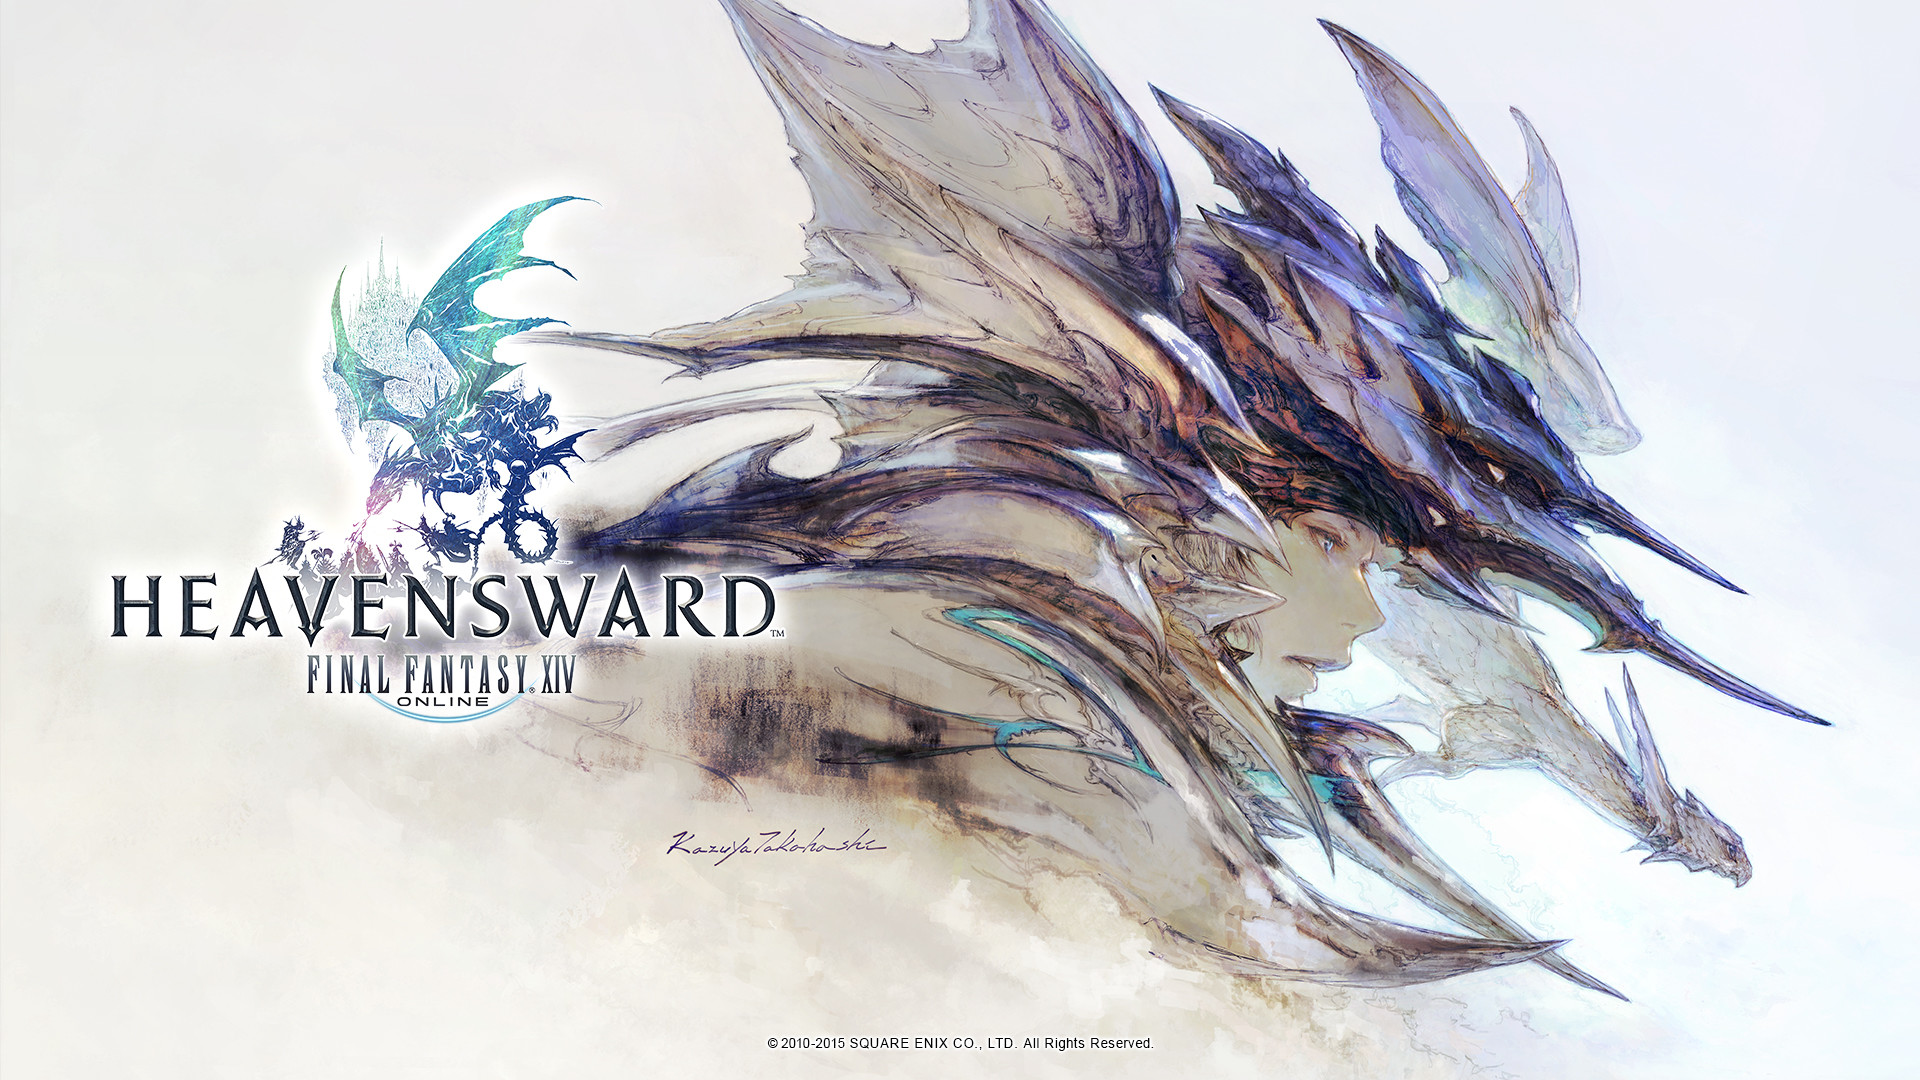 Final Fantasy XIV Gets a New Developer Diary Video Series, First Chapter  Showcases Sound Design